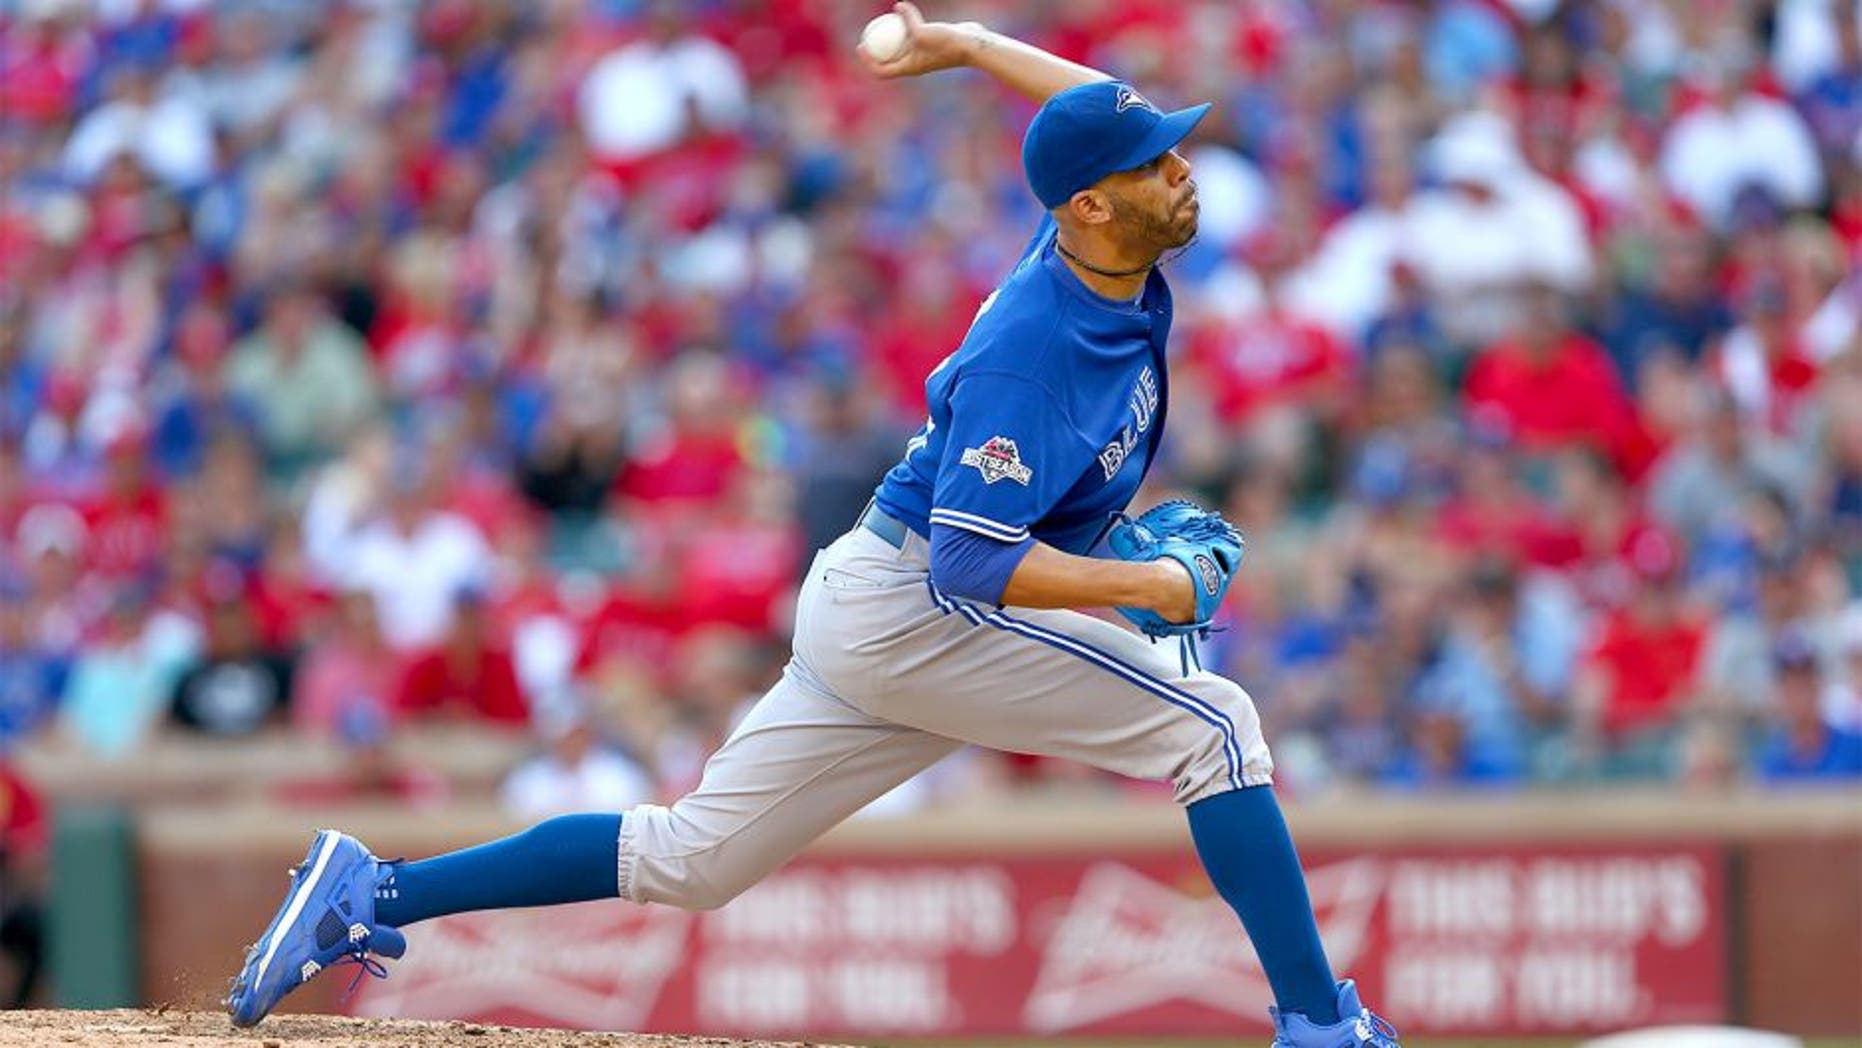 ARLINGTON, TEXAS - OCTOBER 12: David Price #14 of the Toronto Blue Jays pitches during Game 4 of the ALDS against the Texas Rangers at Globe Life Park on Monday, October 12, 2015 in Arlington, Texas. (Photo by Sarah Crabill/MLB Photos via Getty Images)